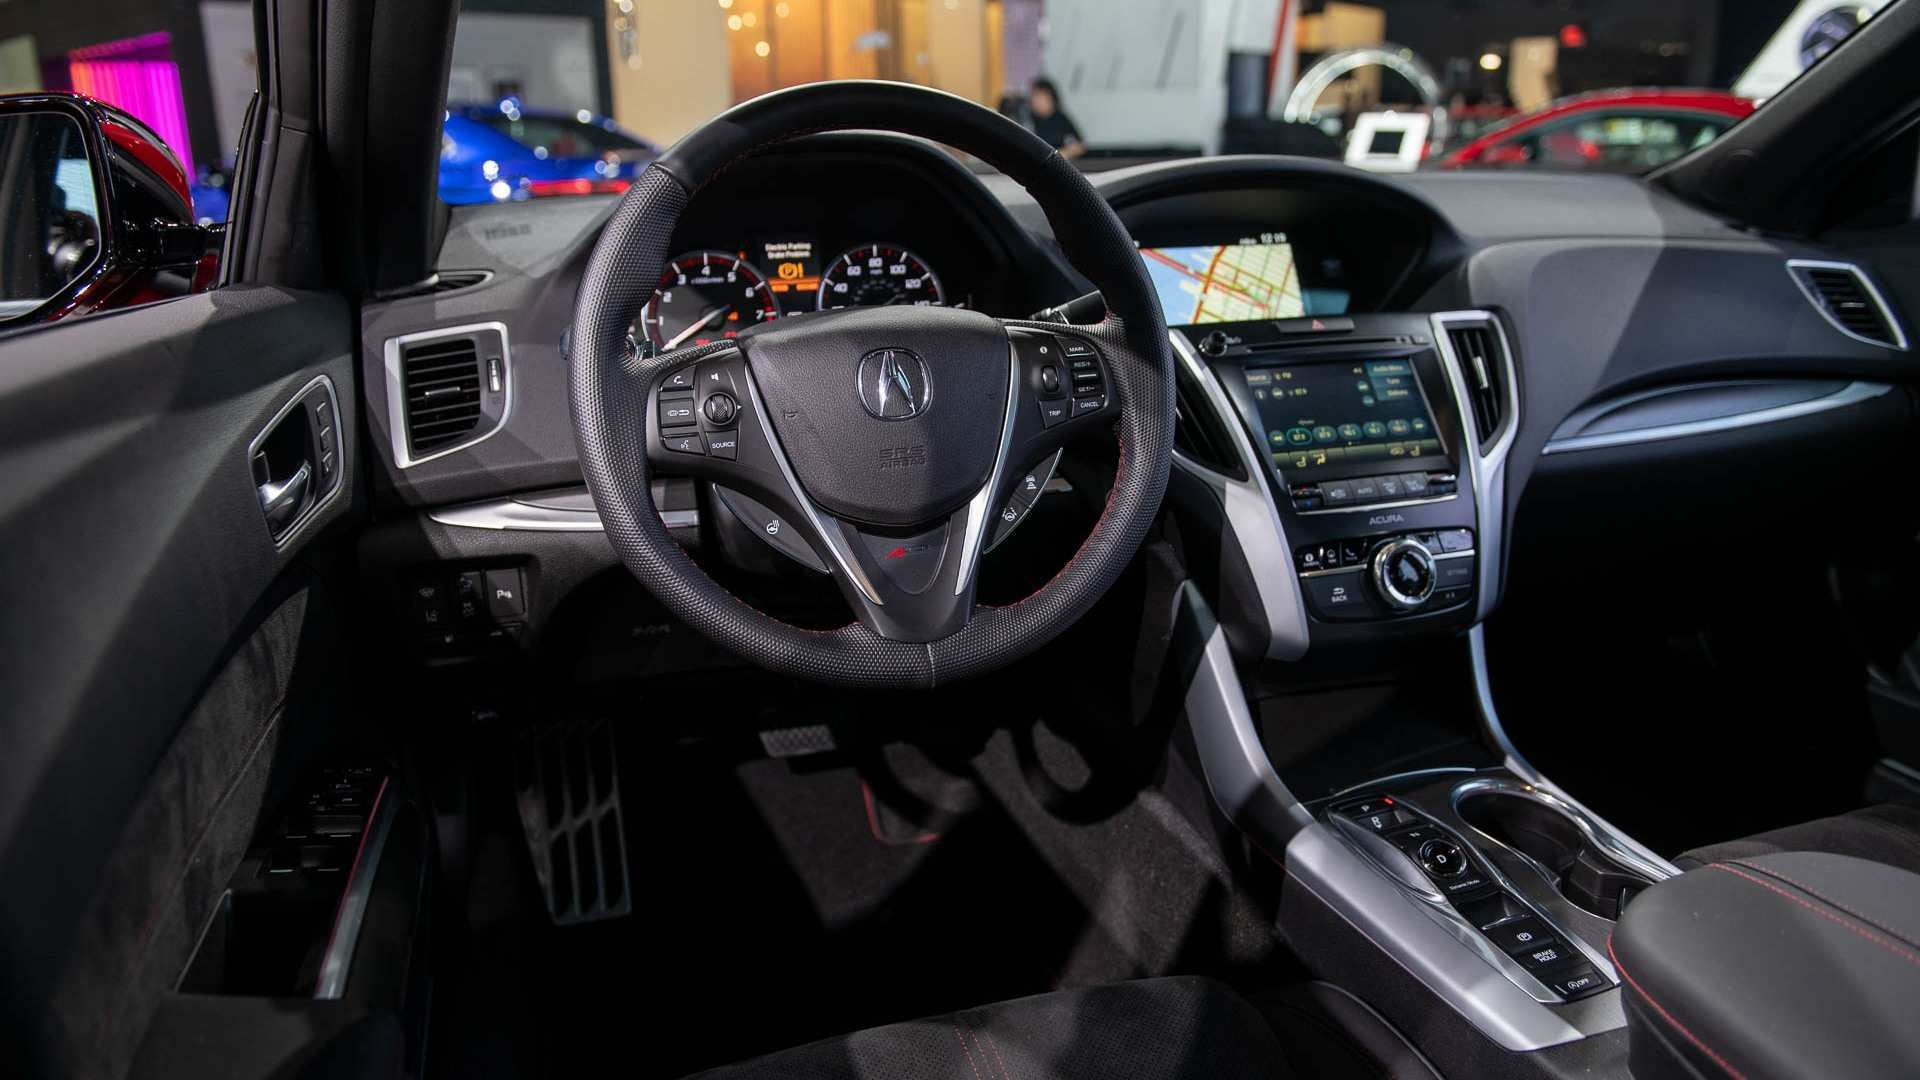 84 The 2020 Acura Tlx Pmc Edition Specs Configurations by 2020 Acura Tlx Pmc Edition Specs